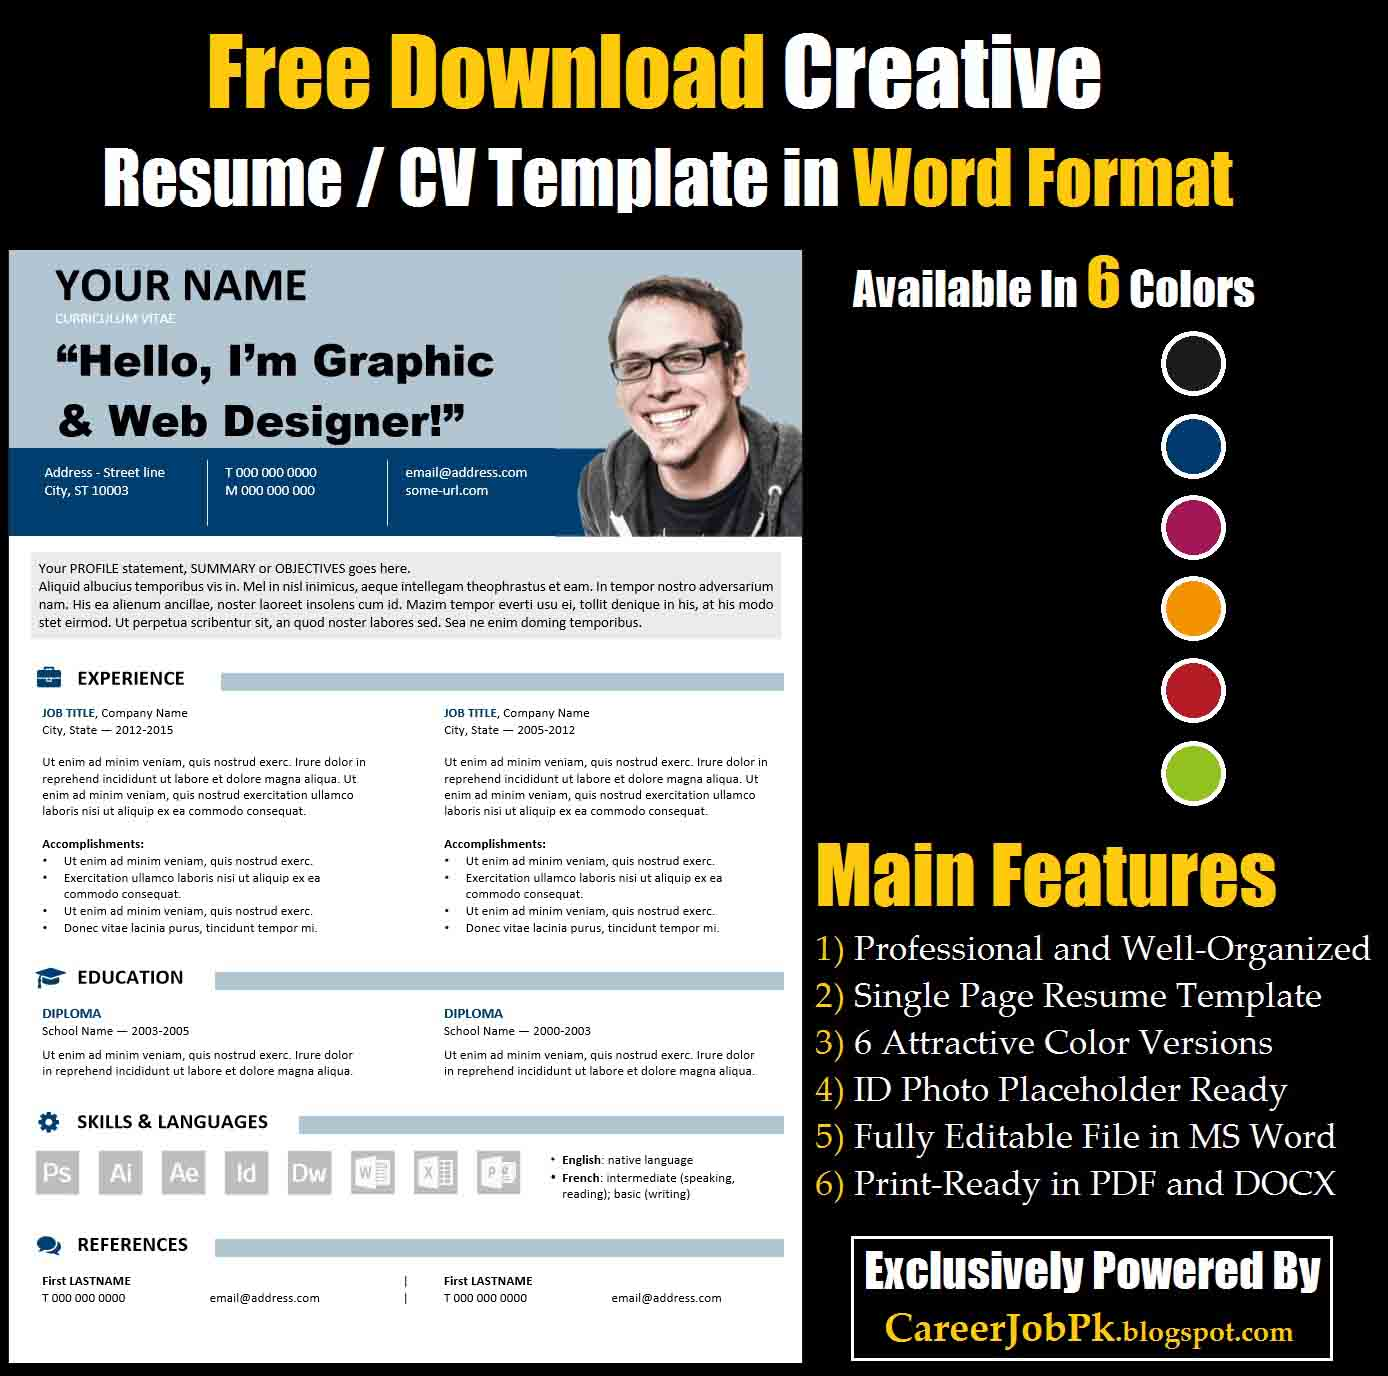 free creative resume templates online free editable resume cv template in ms word format 11093